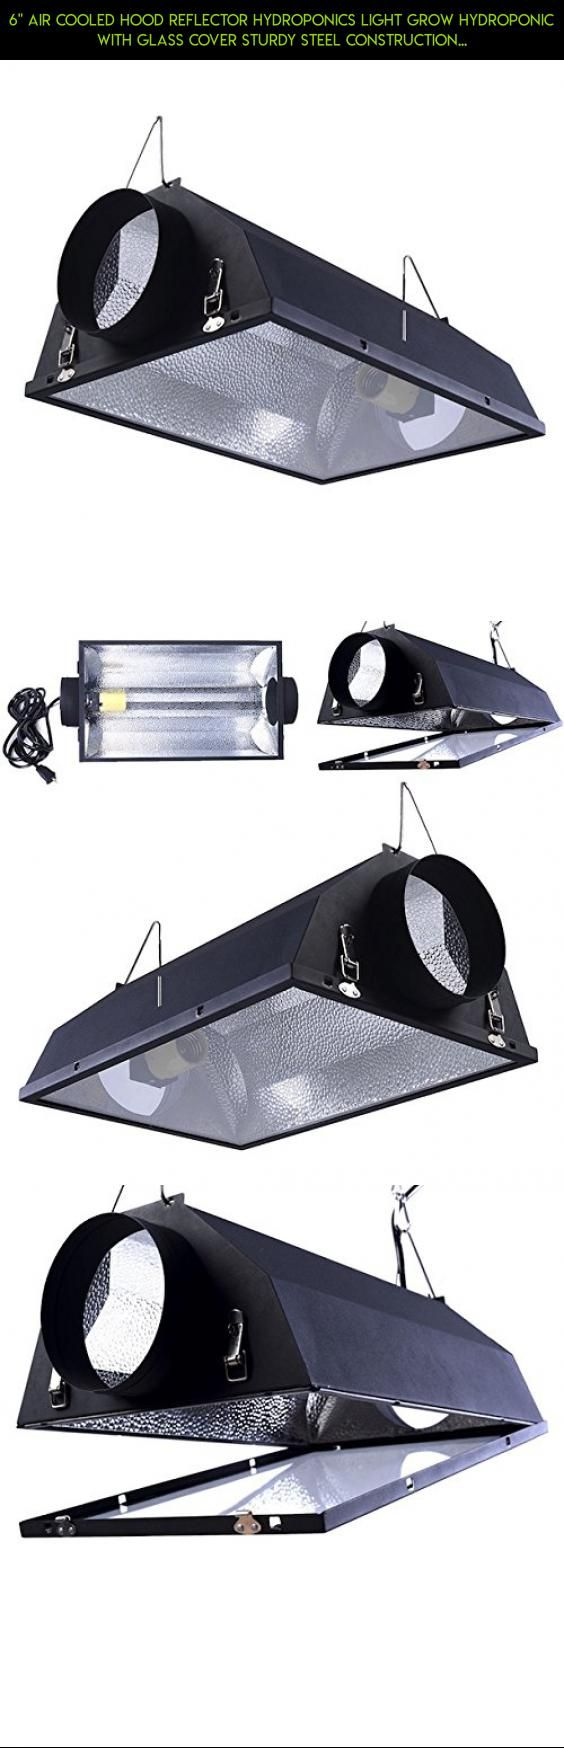 "6"" Air Cooled Hood Reflector Hydroponics Light Grow Hydroponic With Glass Cover Sturdy Steel Construction Rust-Proof Greenhouse Laboratory Plant Light #pad #shopping #technology #racing #gadgets #fpv #kit #and #tech #products #drone #camera #cooling #heating #parts #plans"